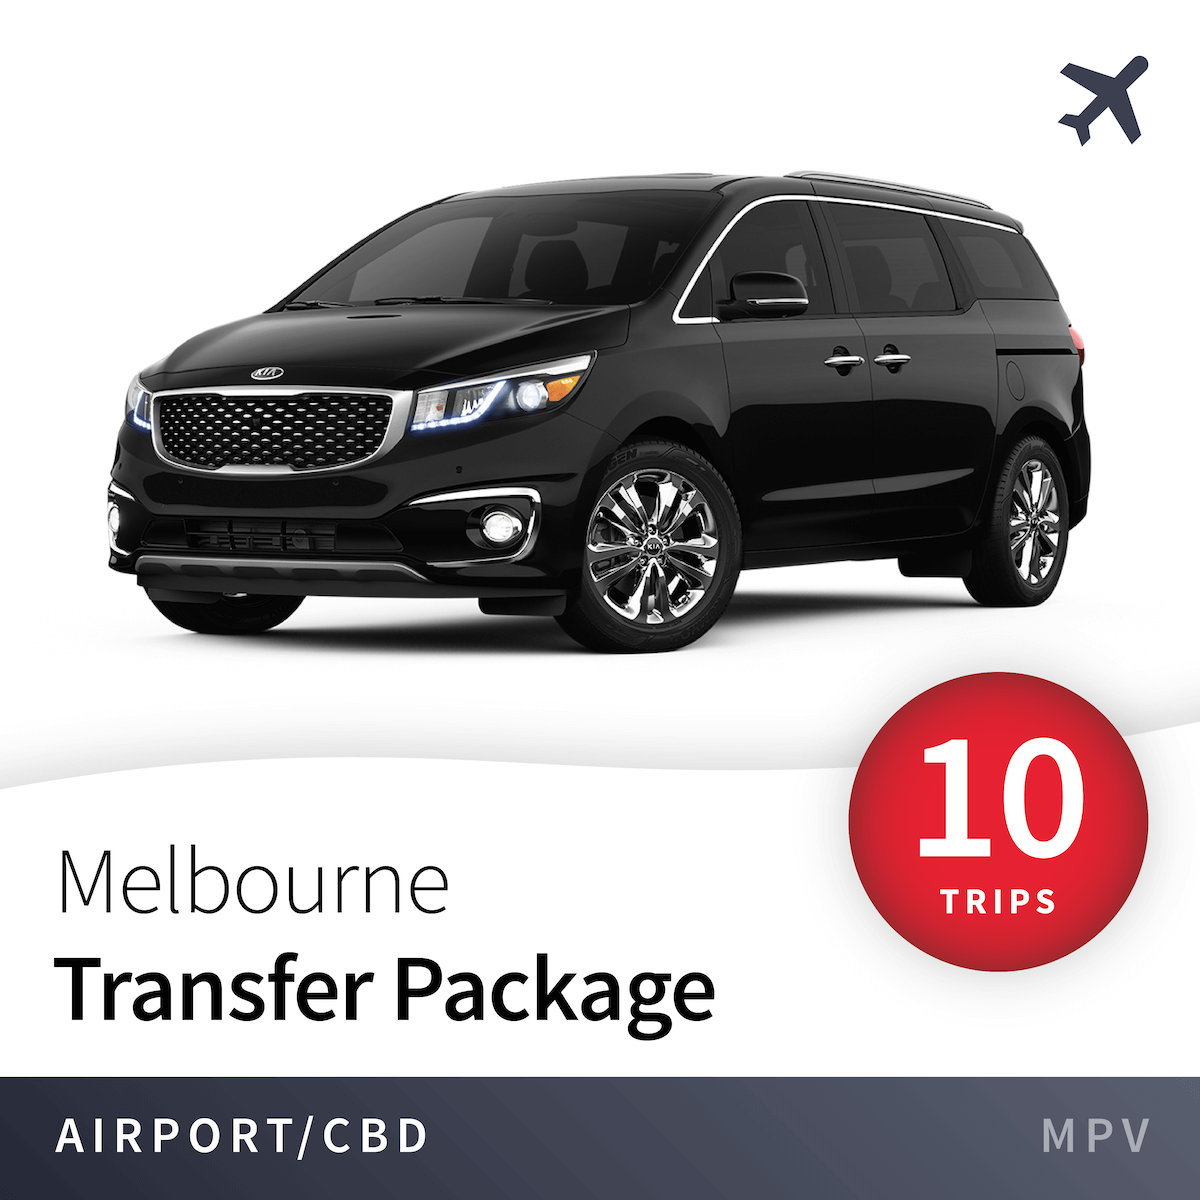 Melbourne Airport Transfer Package - MPV (10 Trips) 11